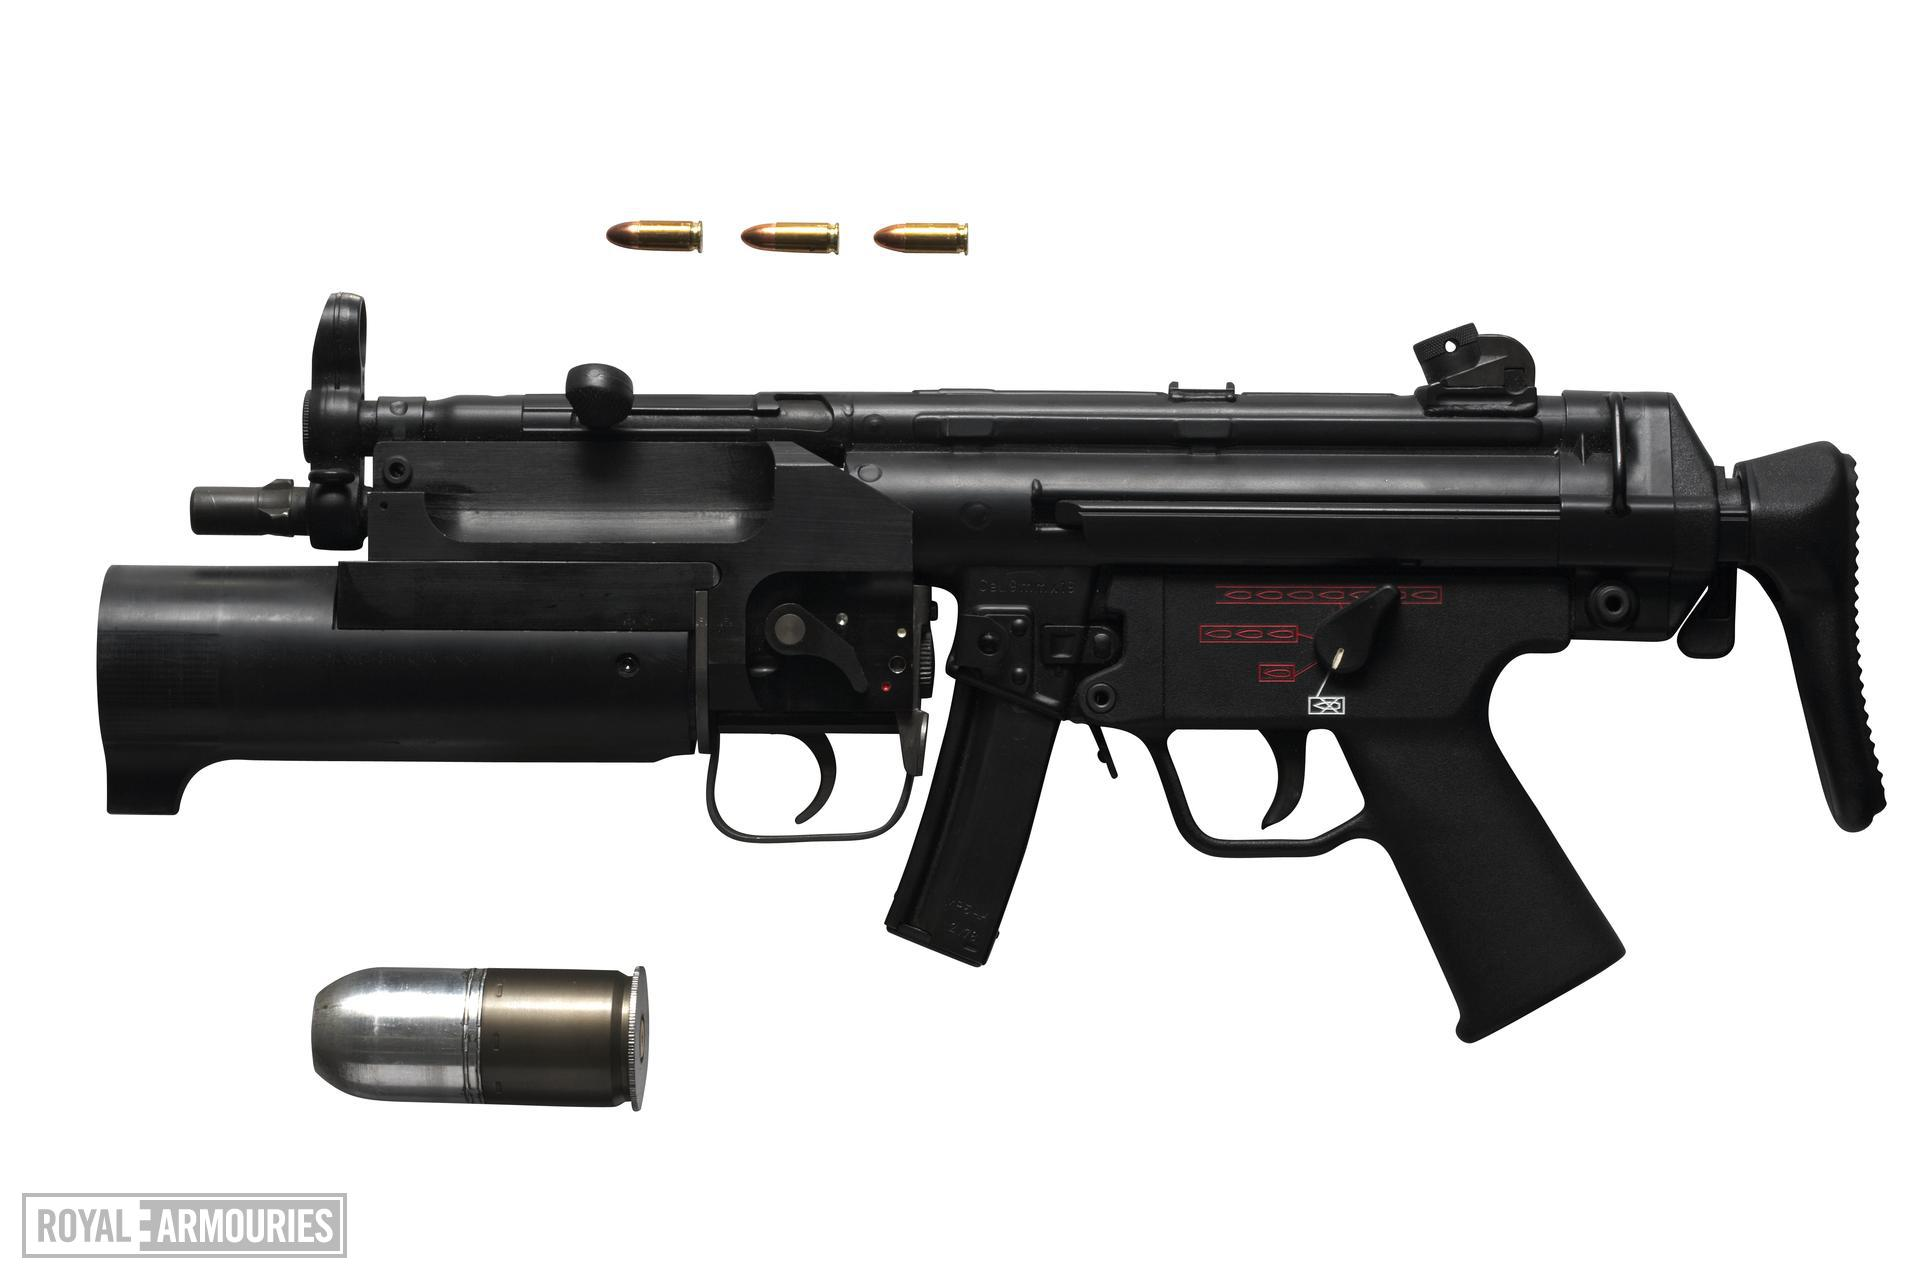 Centrefire breech-loading grenade launcher - Istec 2000 Adapted for attachment to MP5 sub machine gun